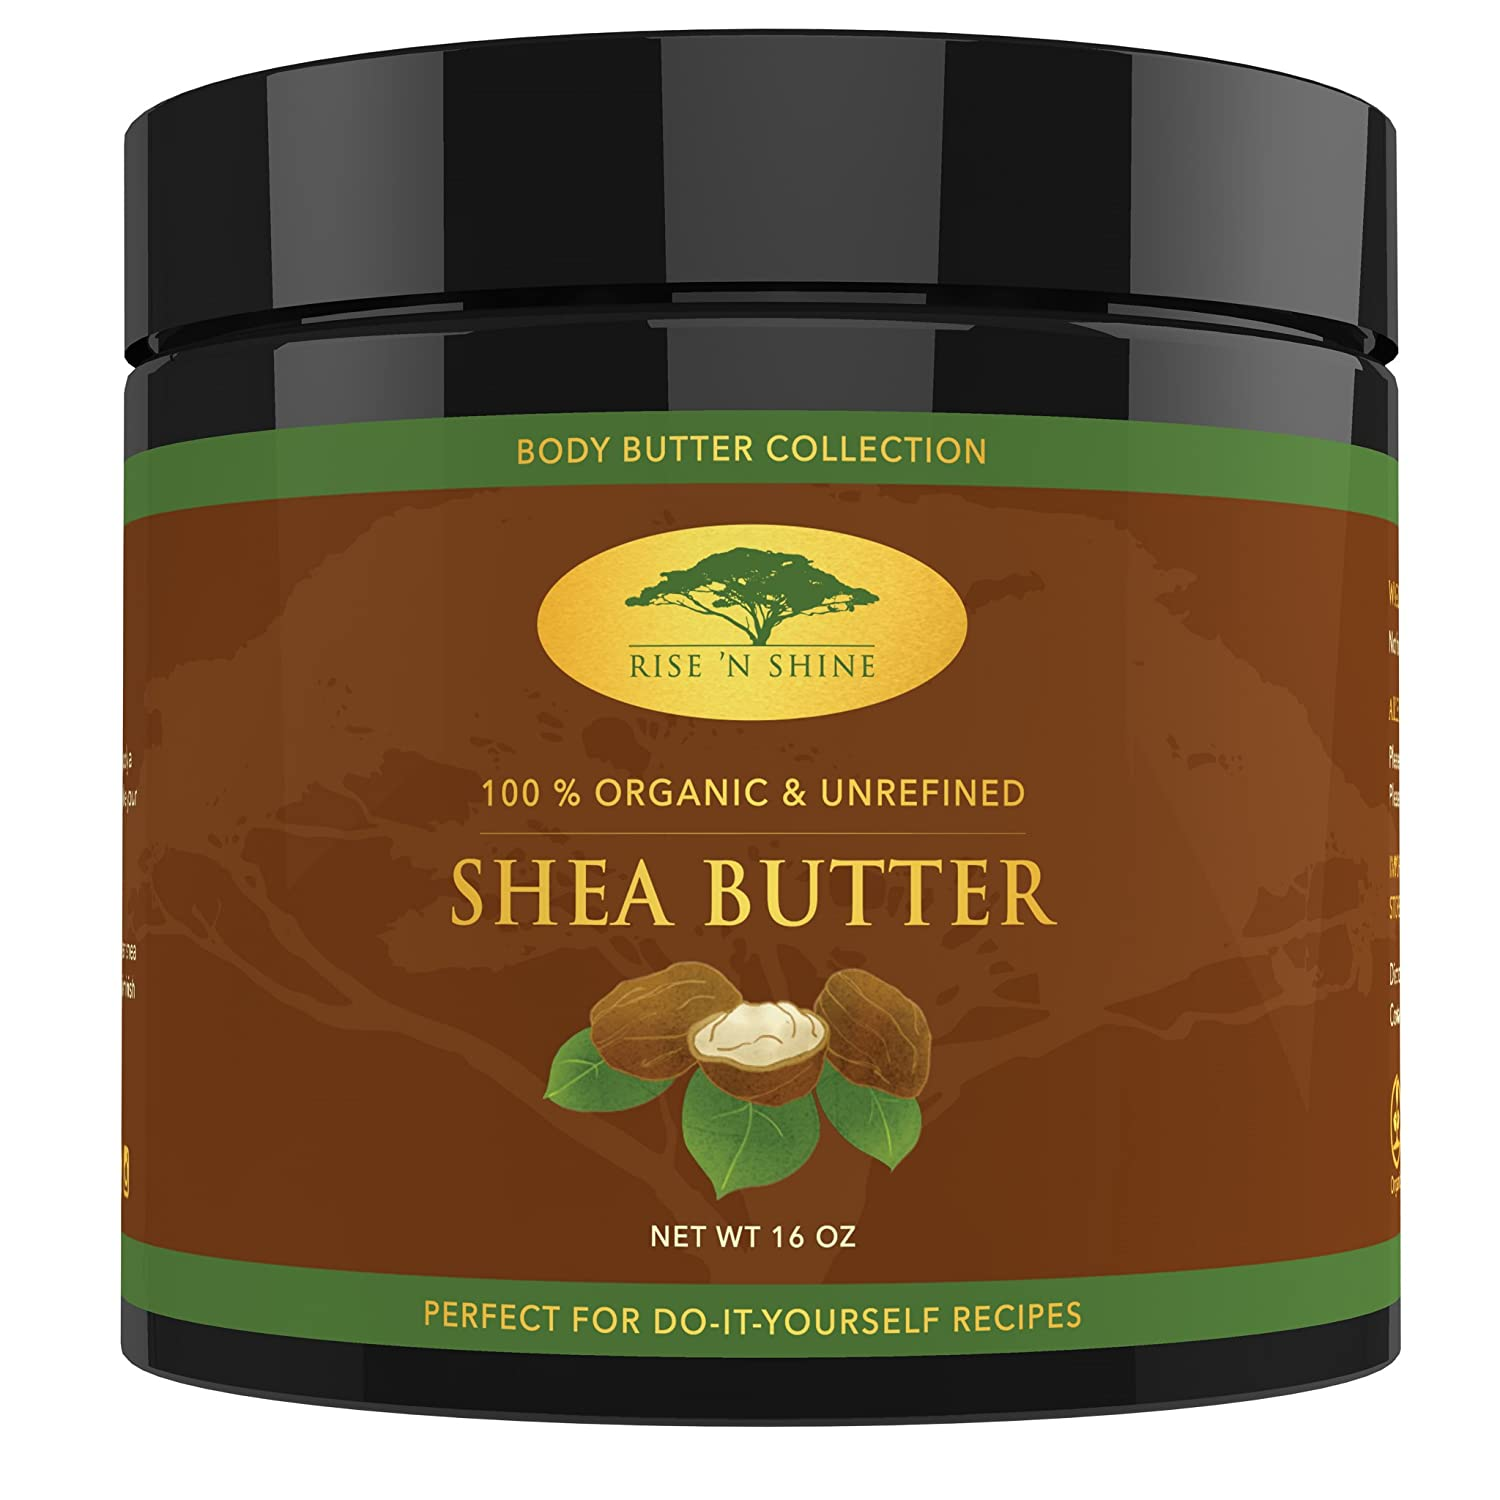 African Shea Butter Raw Organic Unrefined - Healing Body Butter for Face & Body - Deep Conditioner for Dry Skin, Hair Care, Stretch Marks, Eczema/Psoriasis Treatment, Lip and Beard Balm, Soap (16 oz)